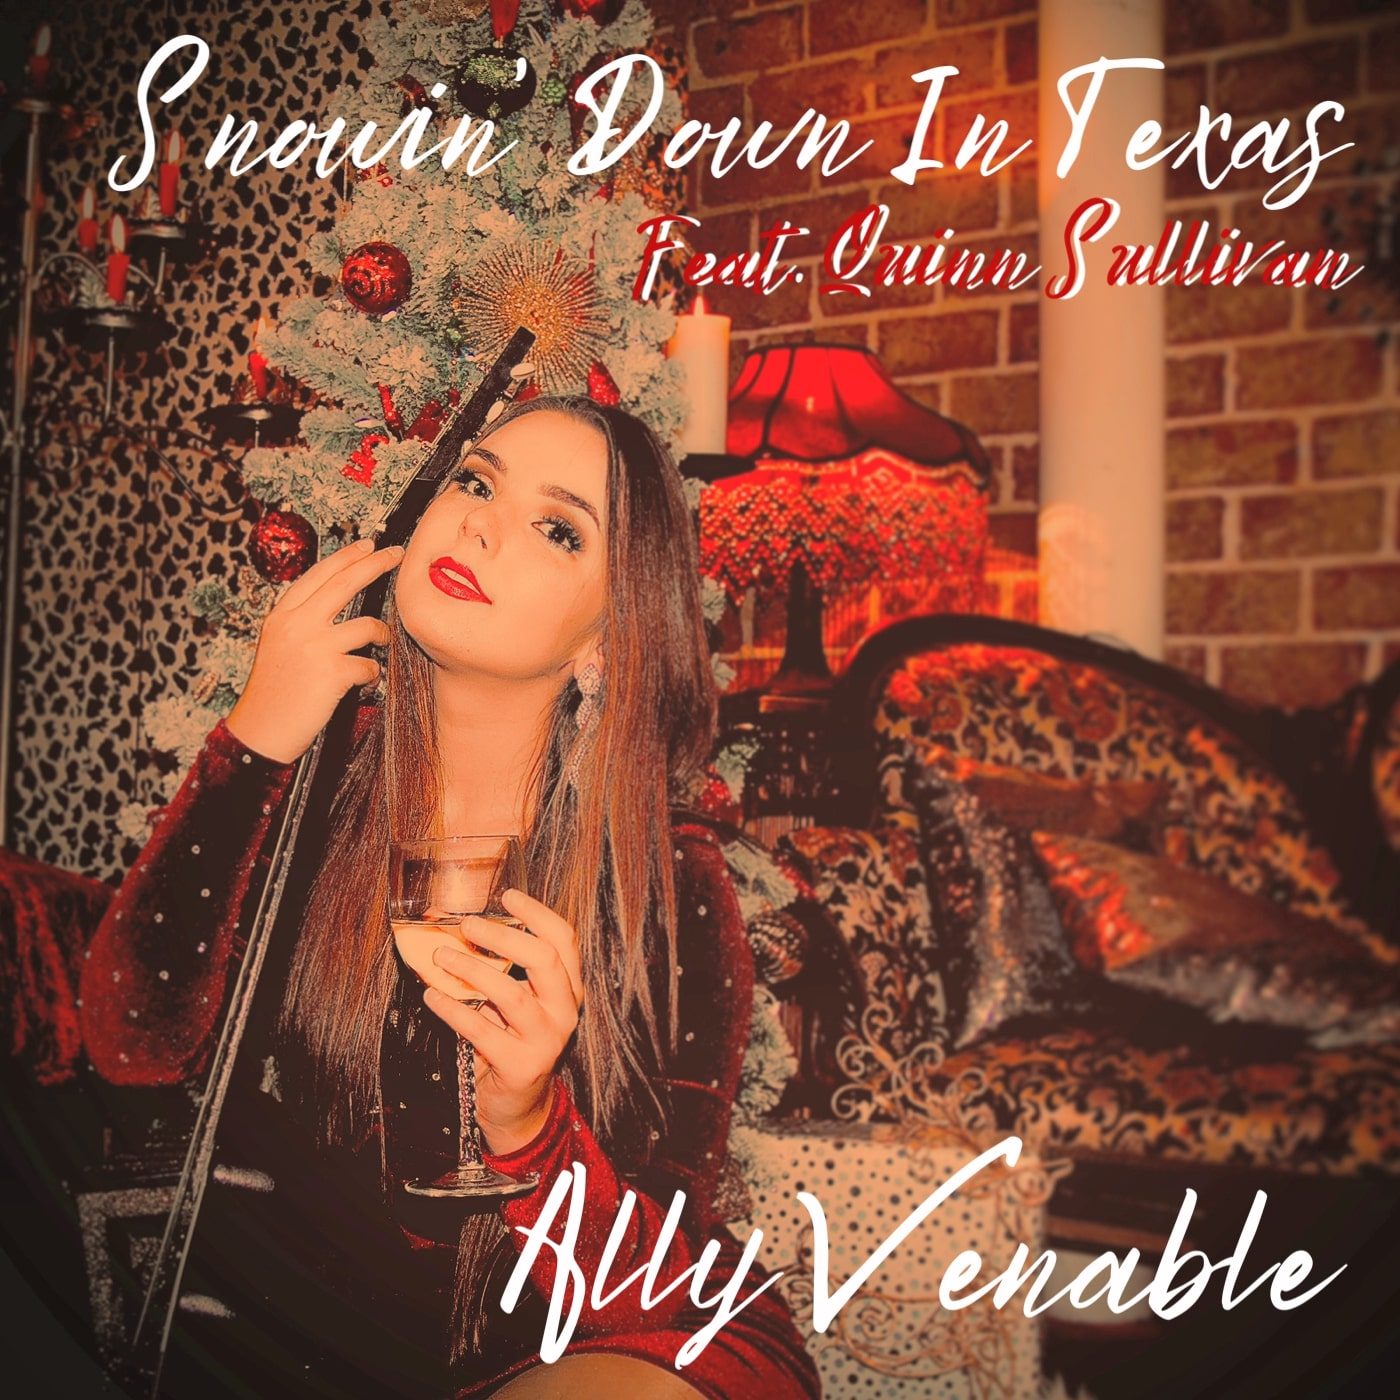 Neue Weihnachtssingel – Snowin' Down In Texas – Ally Venable